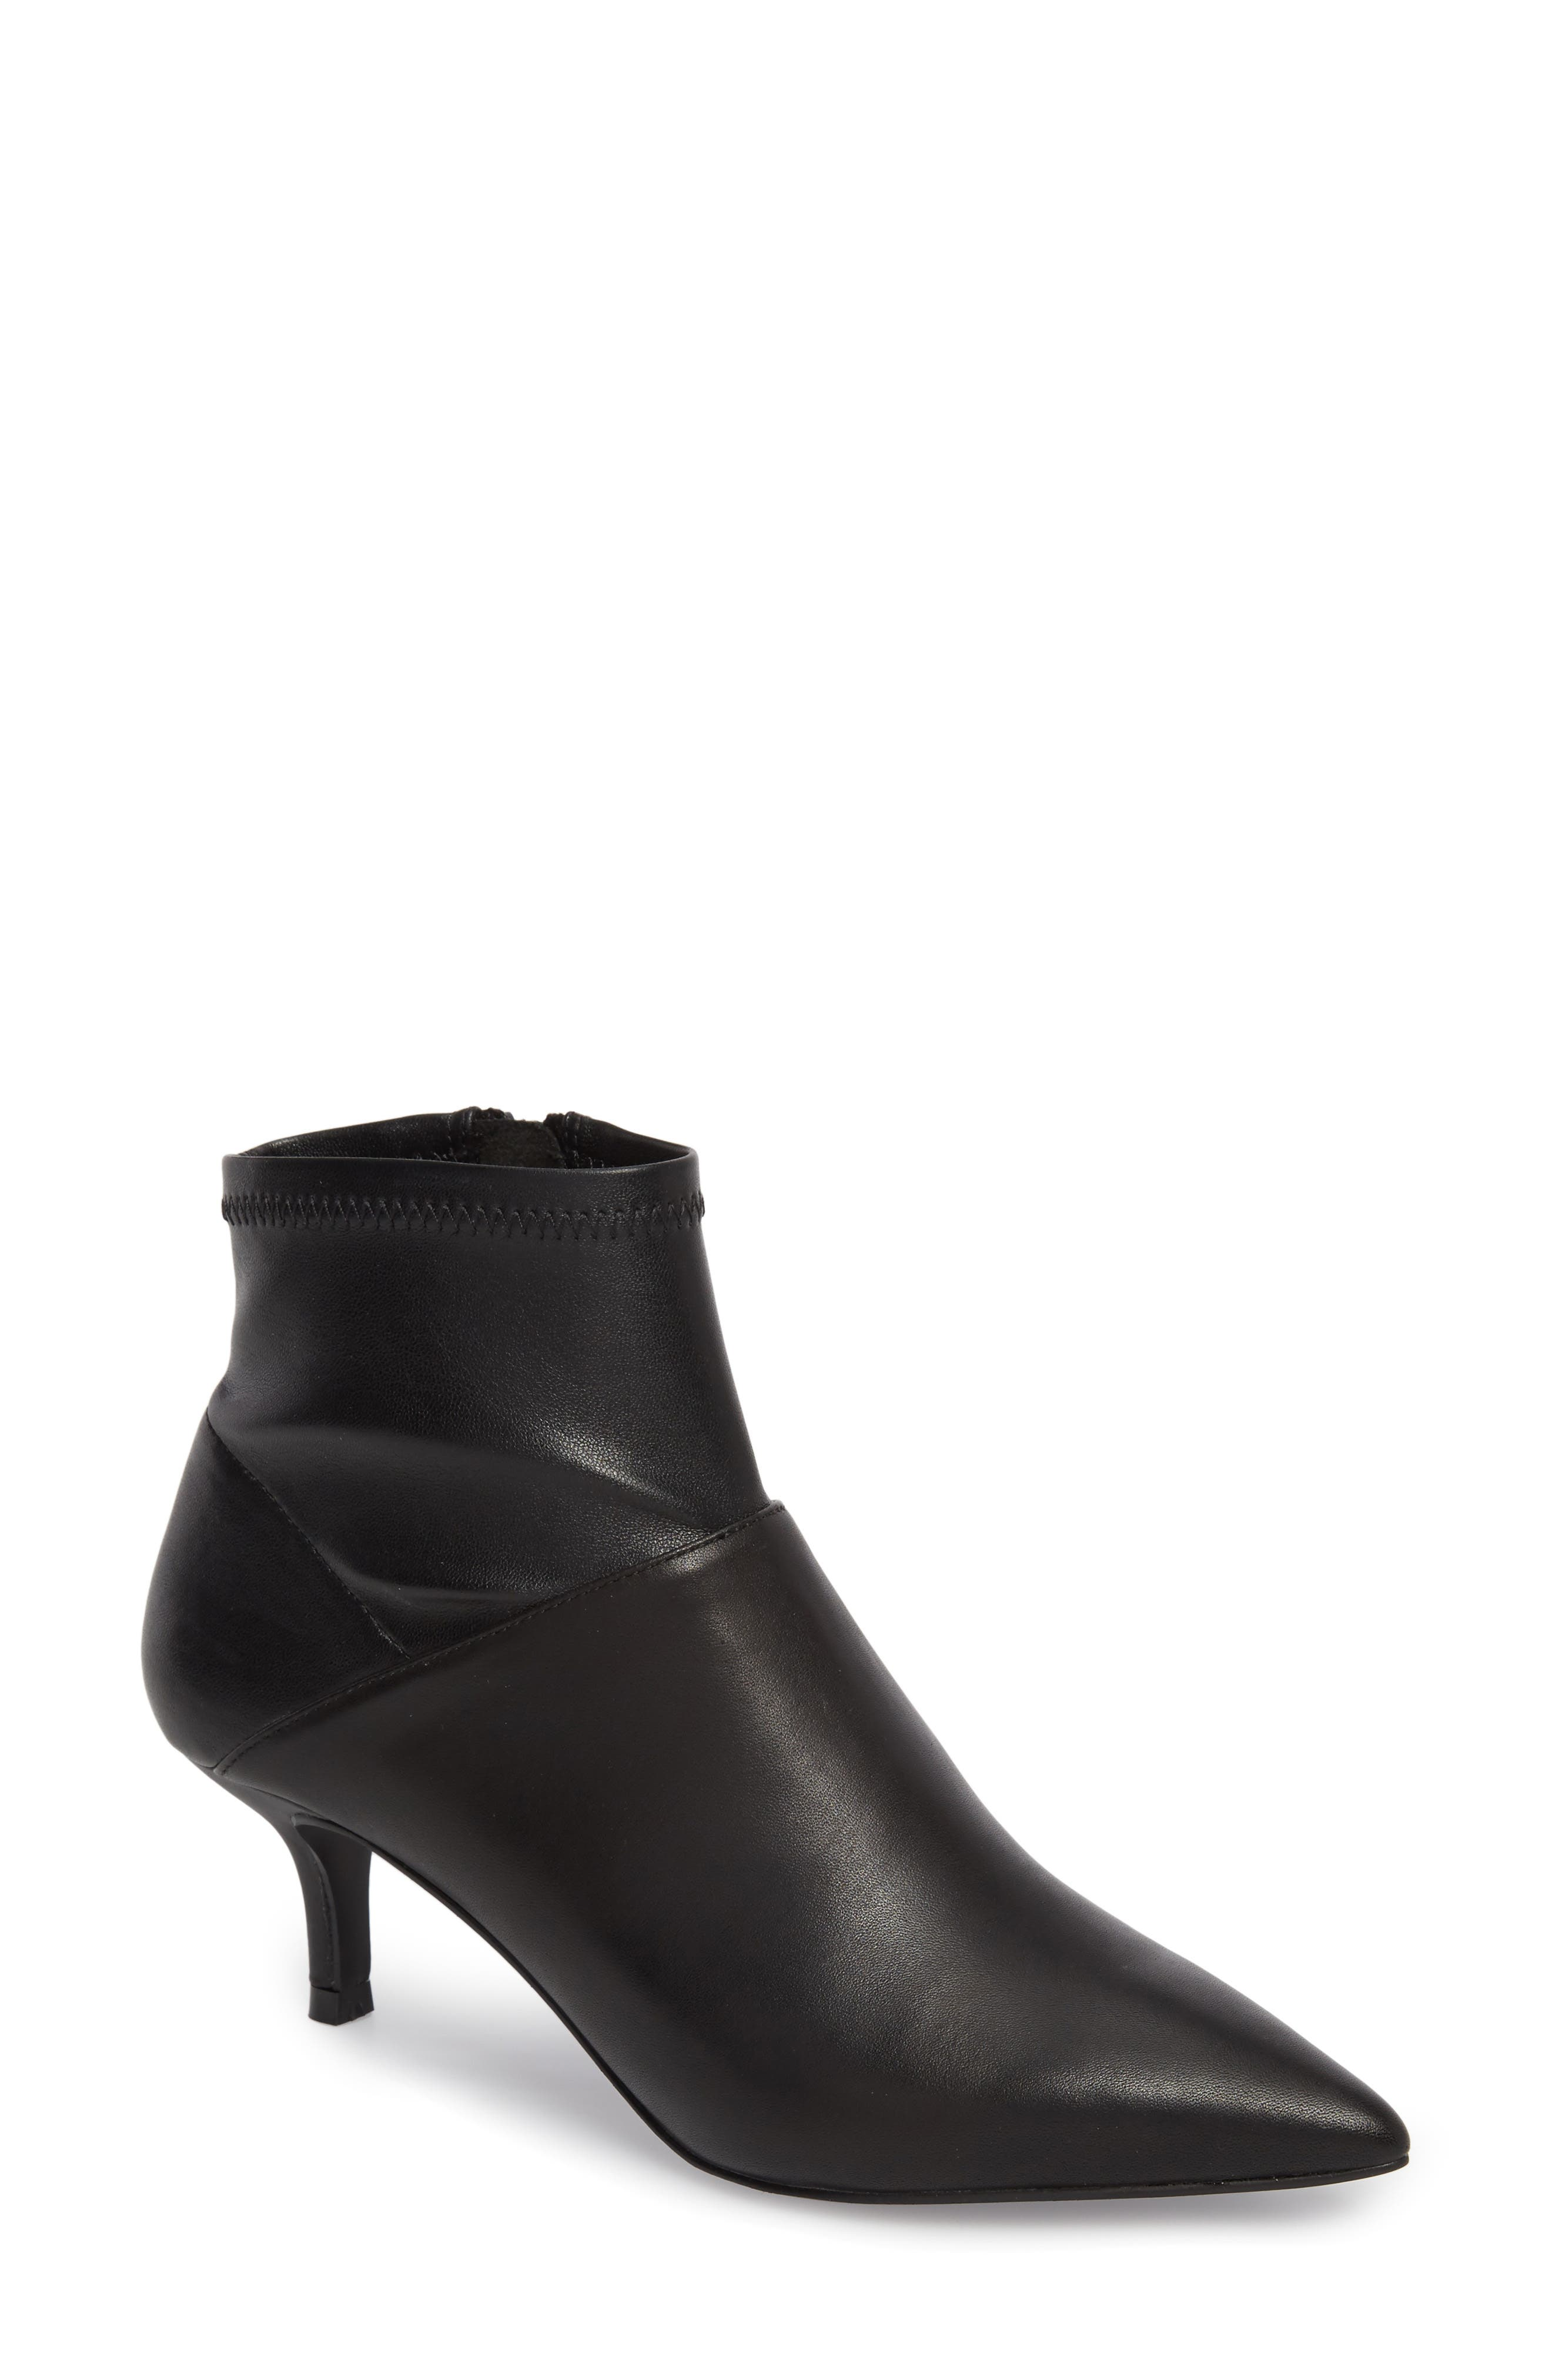 Women's Black Kitten Heel Boots, Boots for Women | Nordstrom